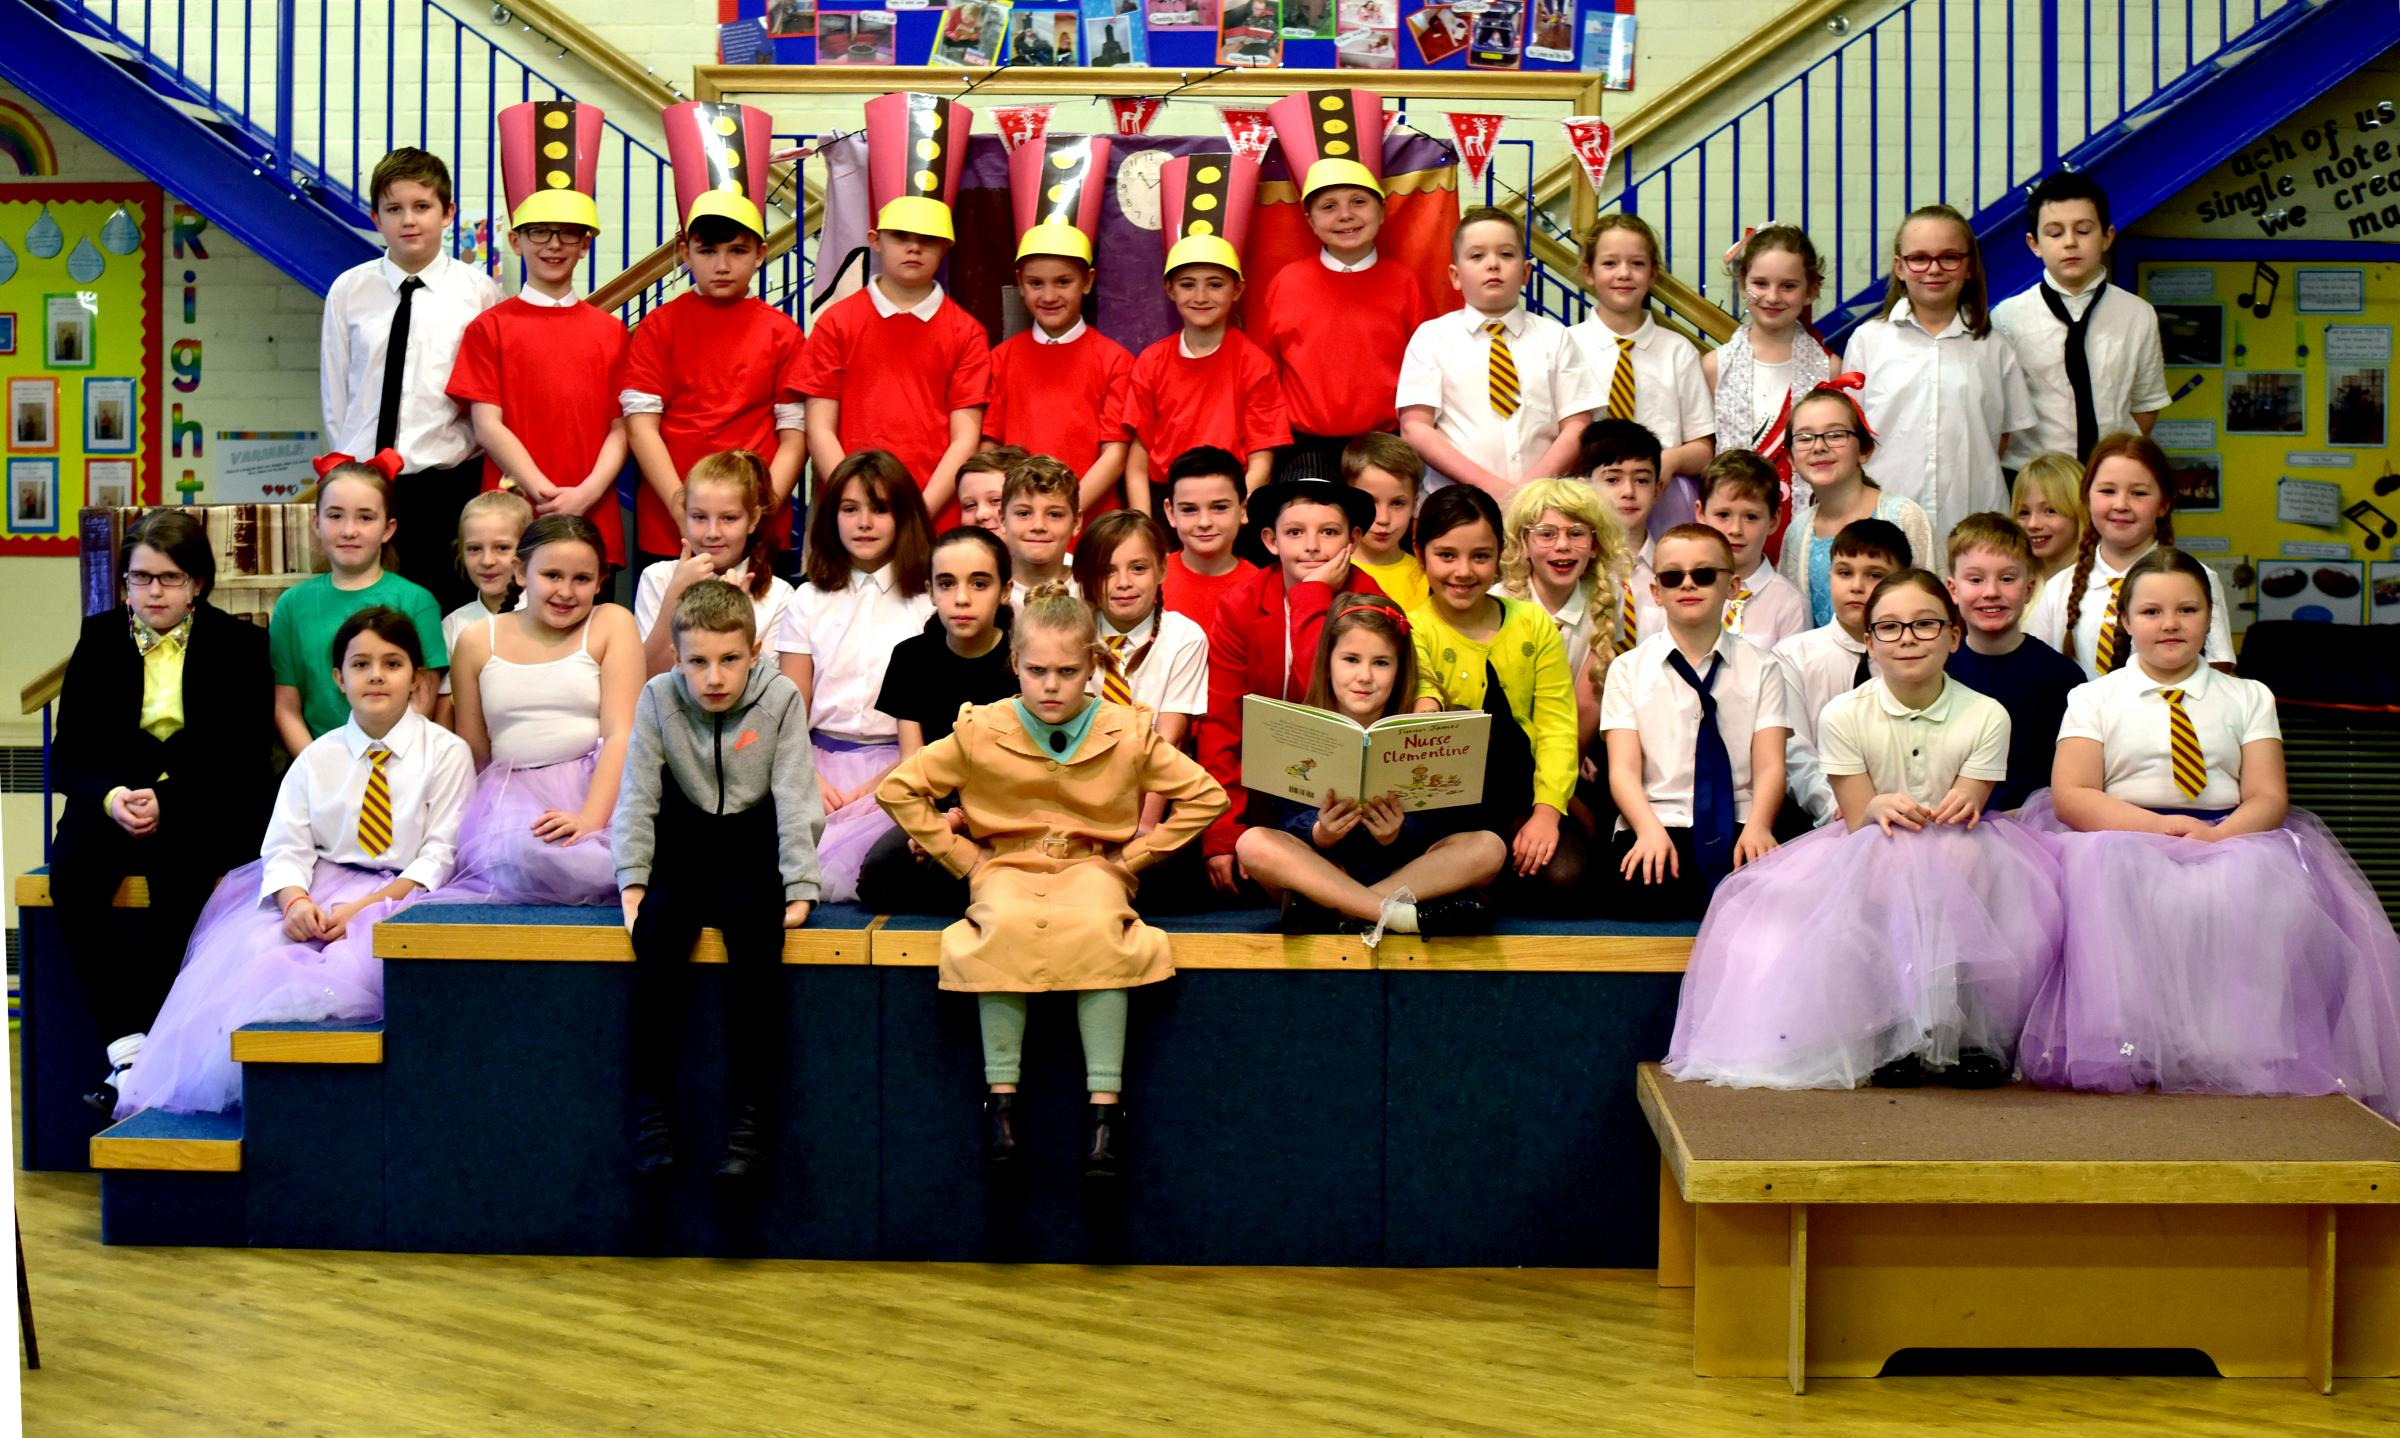 Little Lever school performs Matilda with help from Royal Shakespeare Company